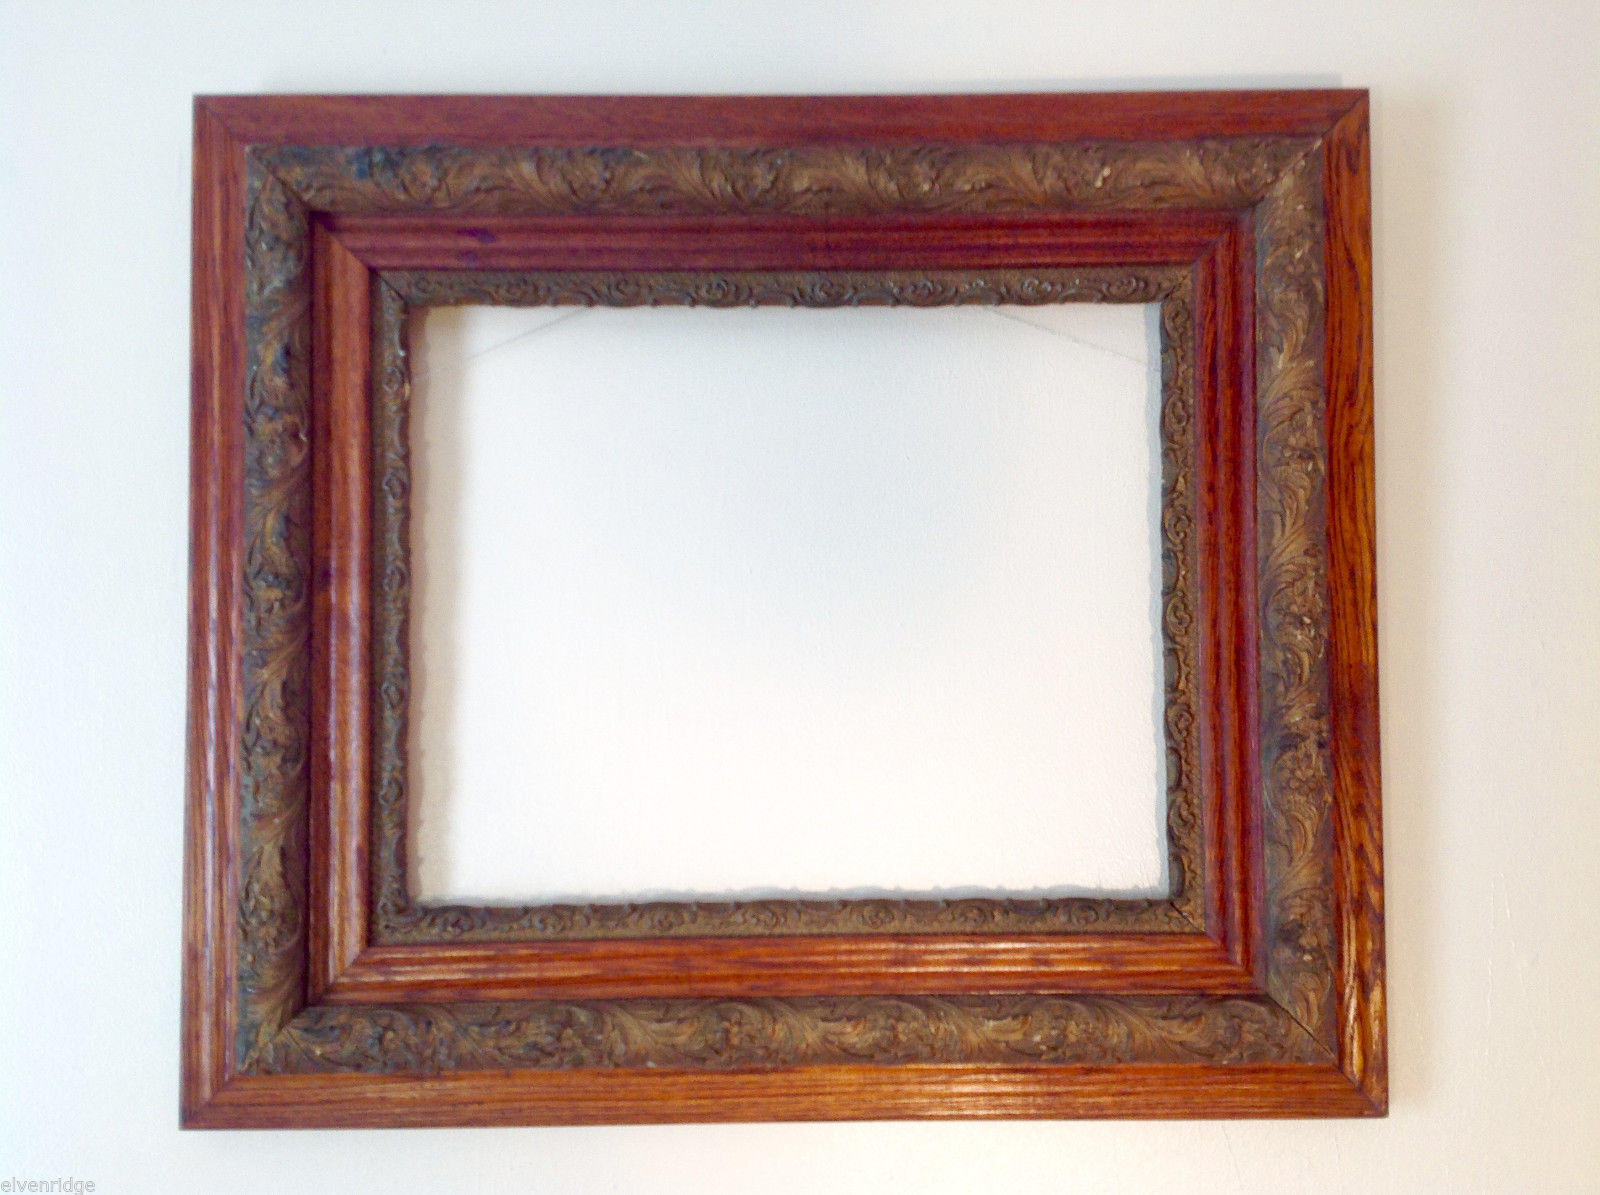 "Wooden Picture or Art Frame Vintage Antique Carved Wood for 19.25"" x 15.5"" Piece"